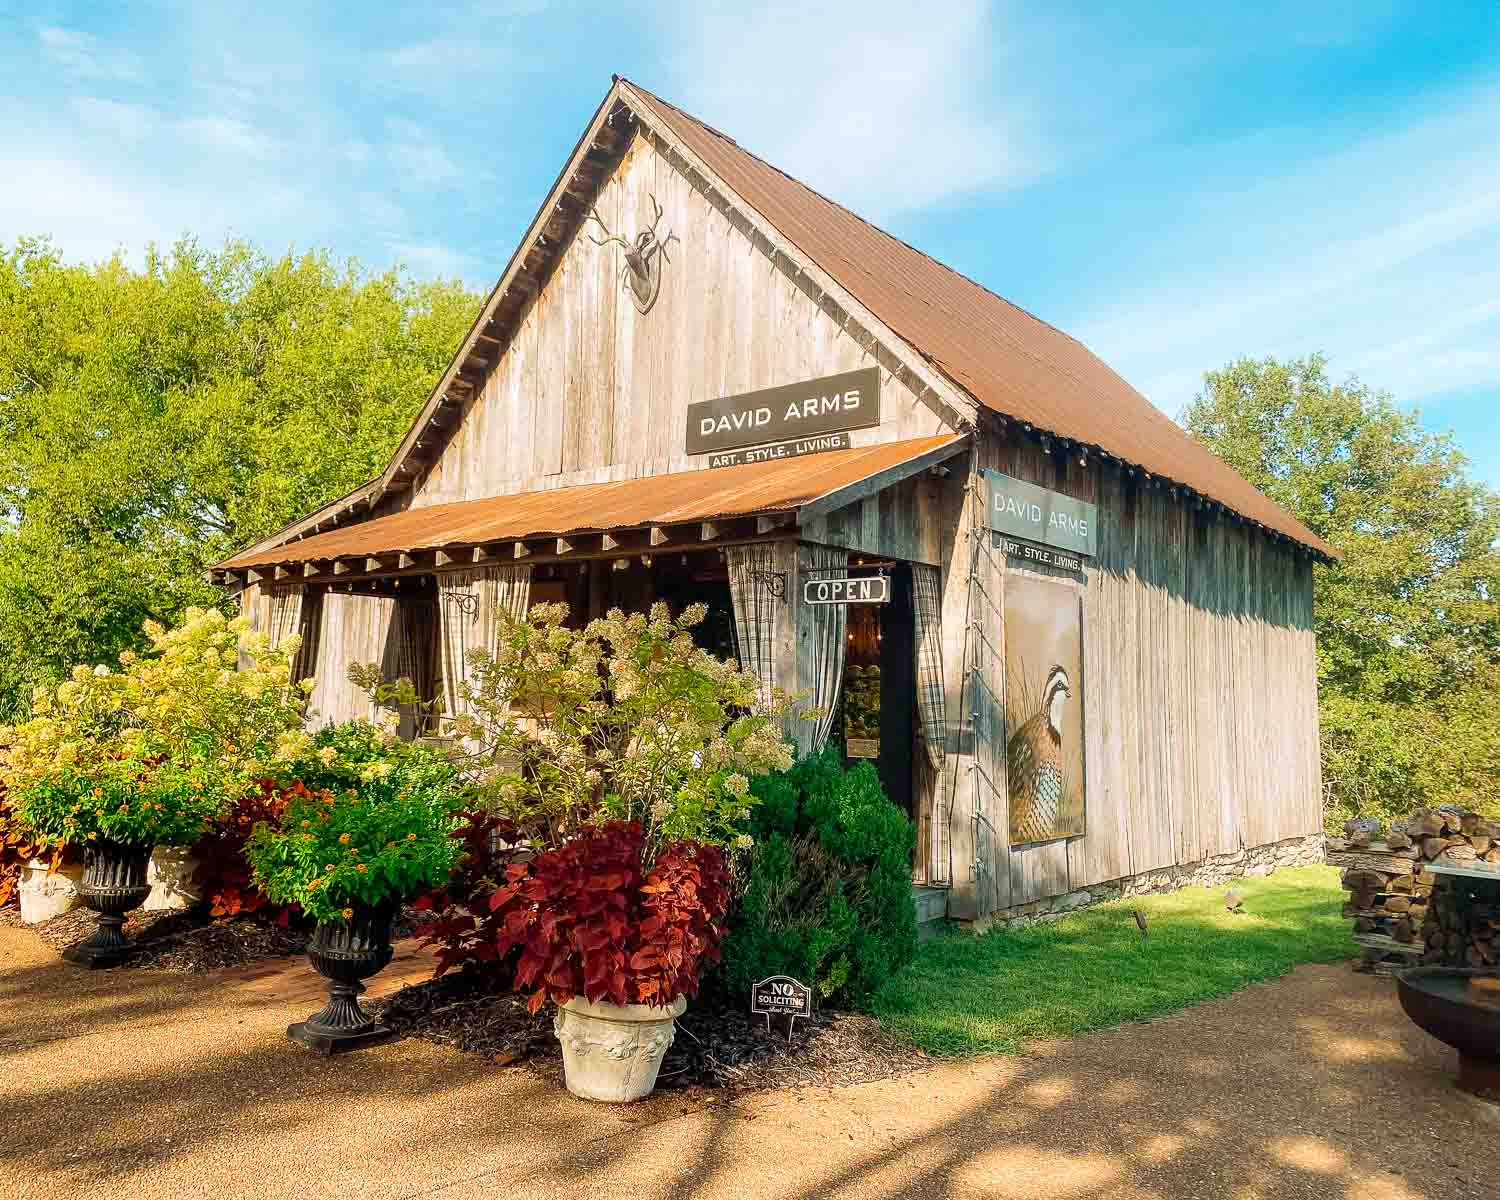 Exterior of David Arms Gallery, a barn surrounded by potted plants, well-trimmed grass, and a pebbled driveway.